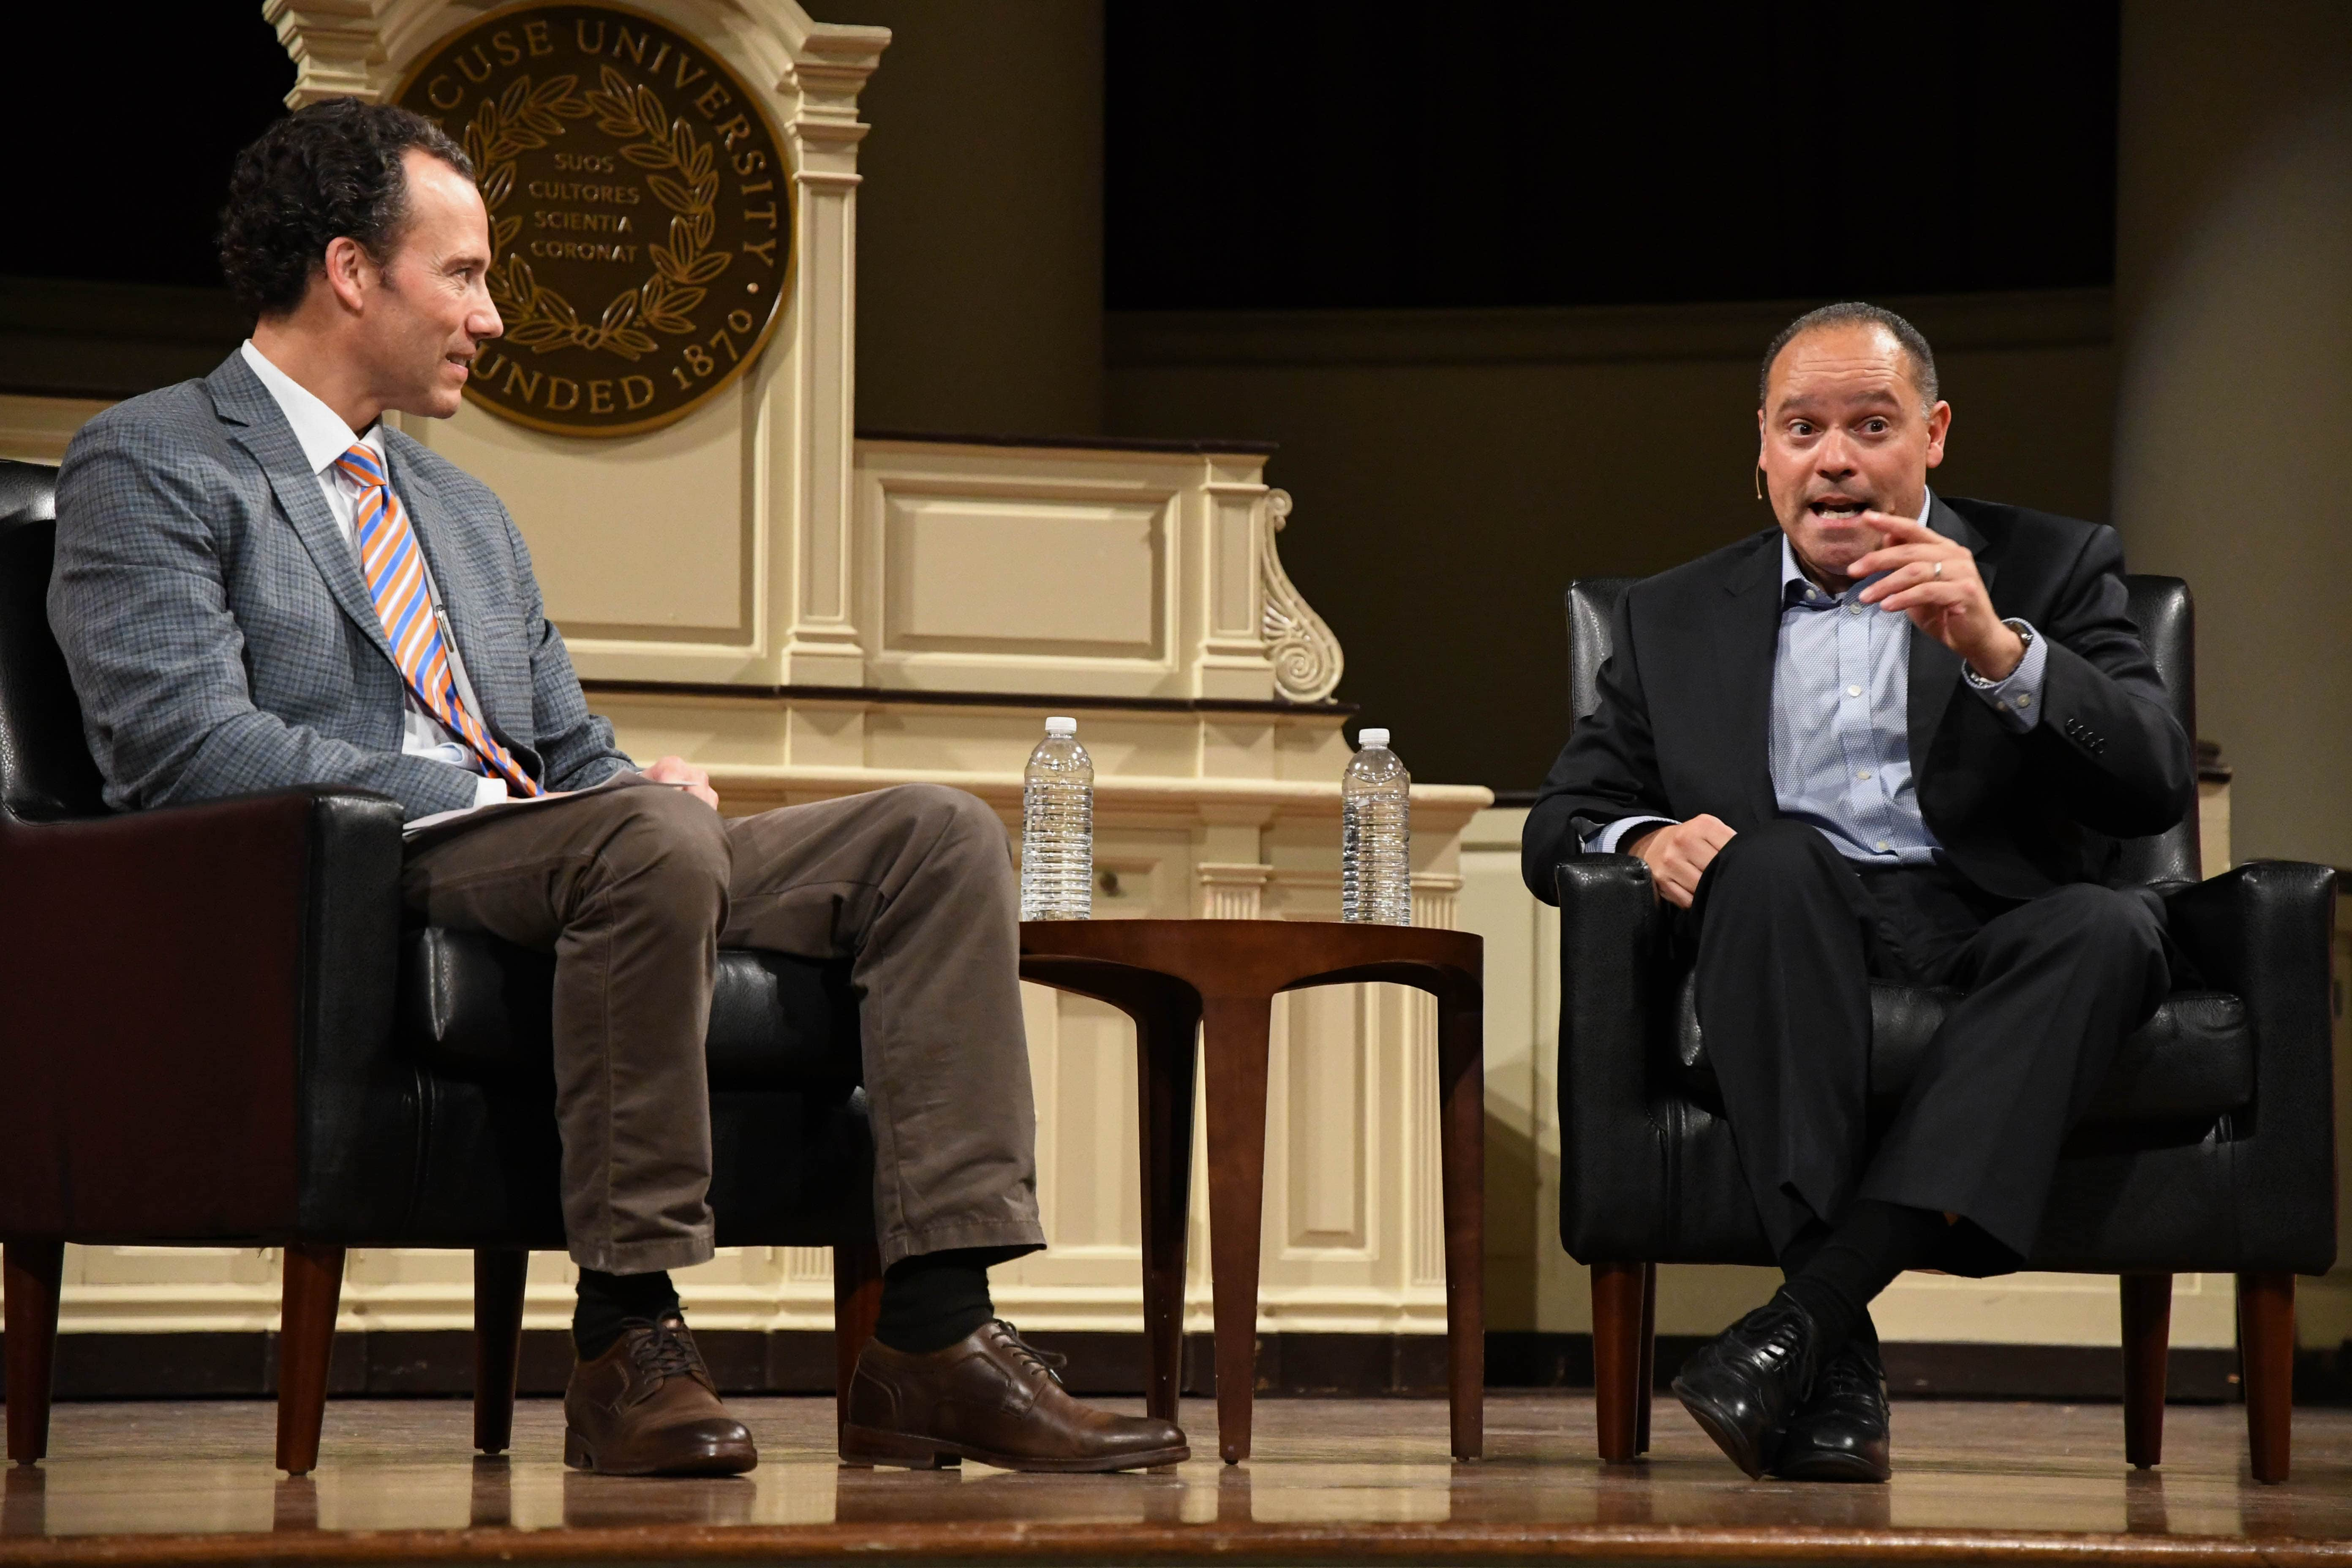 Broadcast & Digital Journalism professor Simon Perez asks Marcus Solis questions about the media industry at Hendricks Chapel on Tuesday.